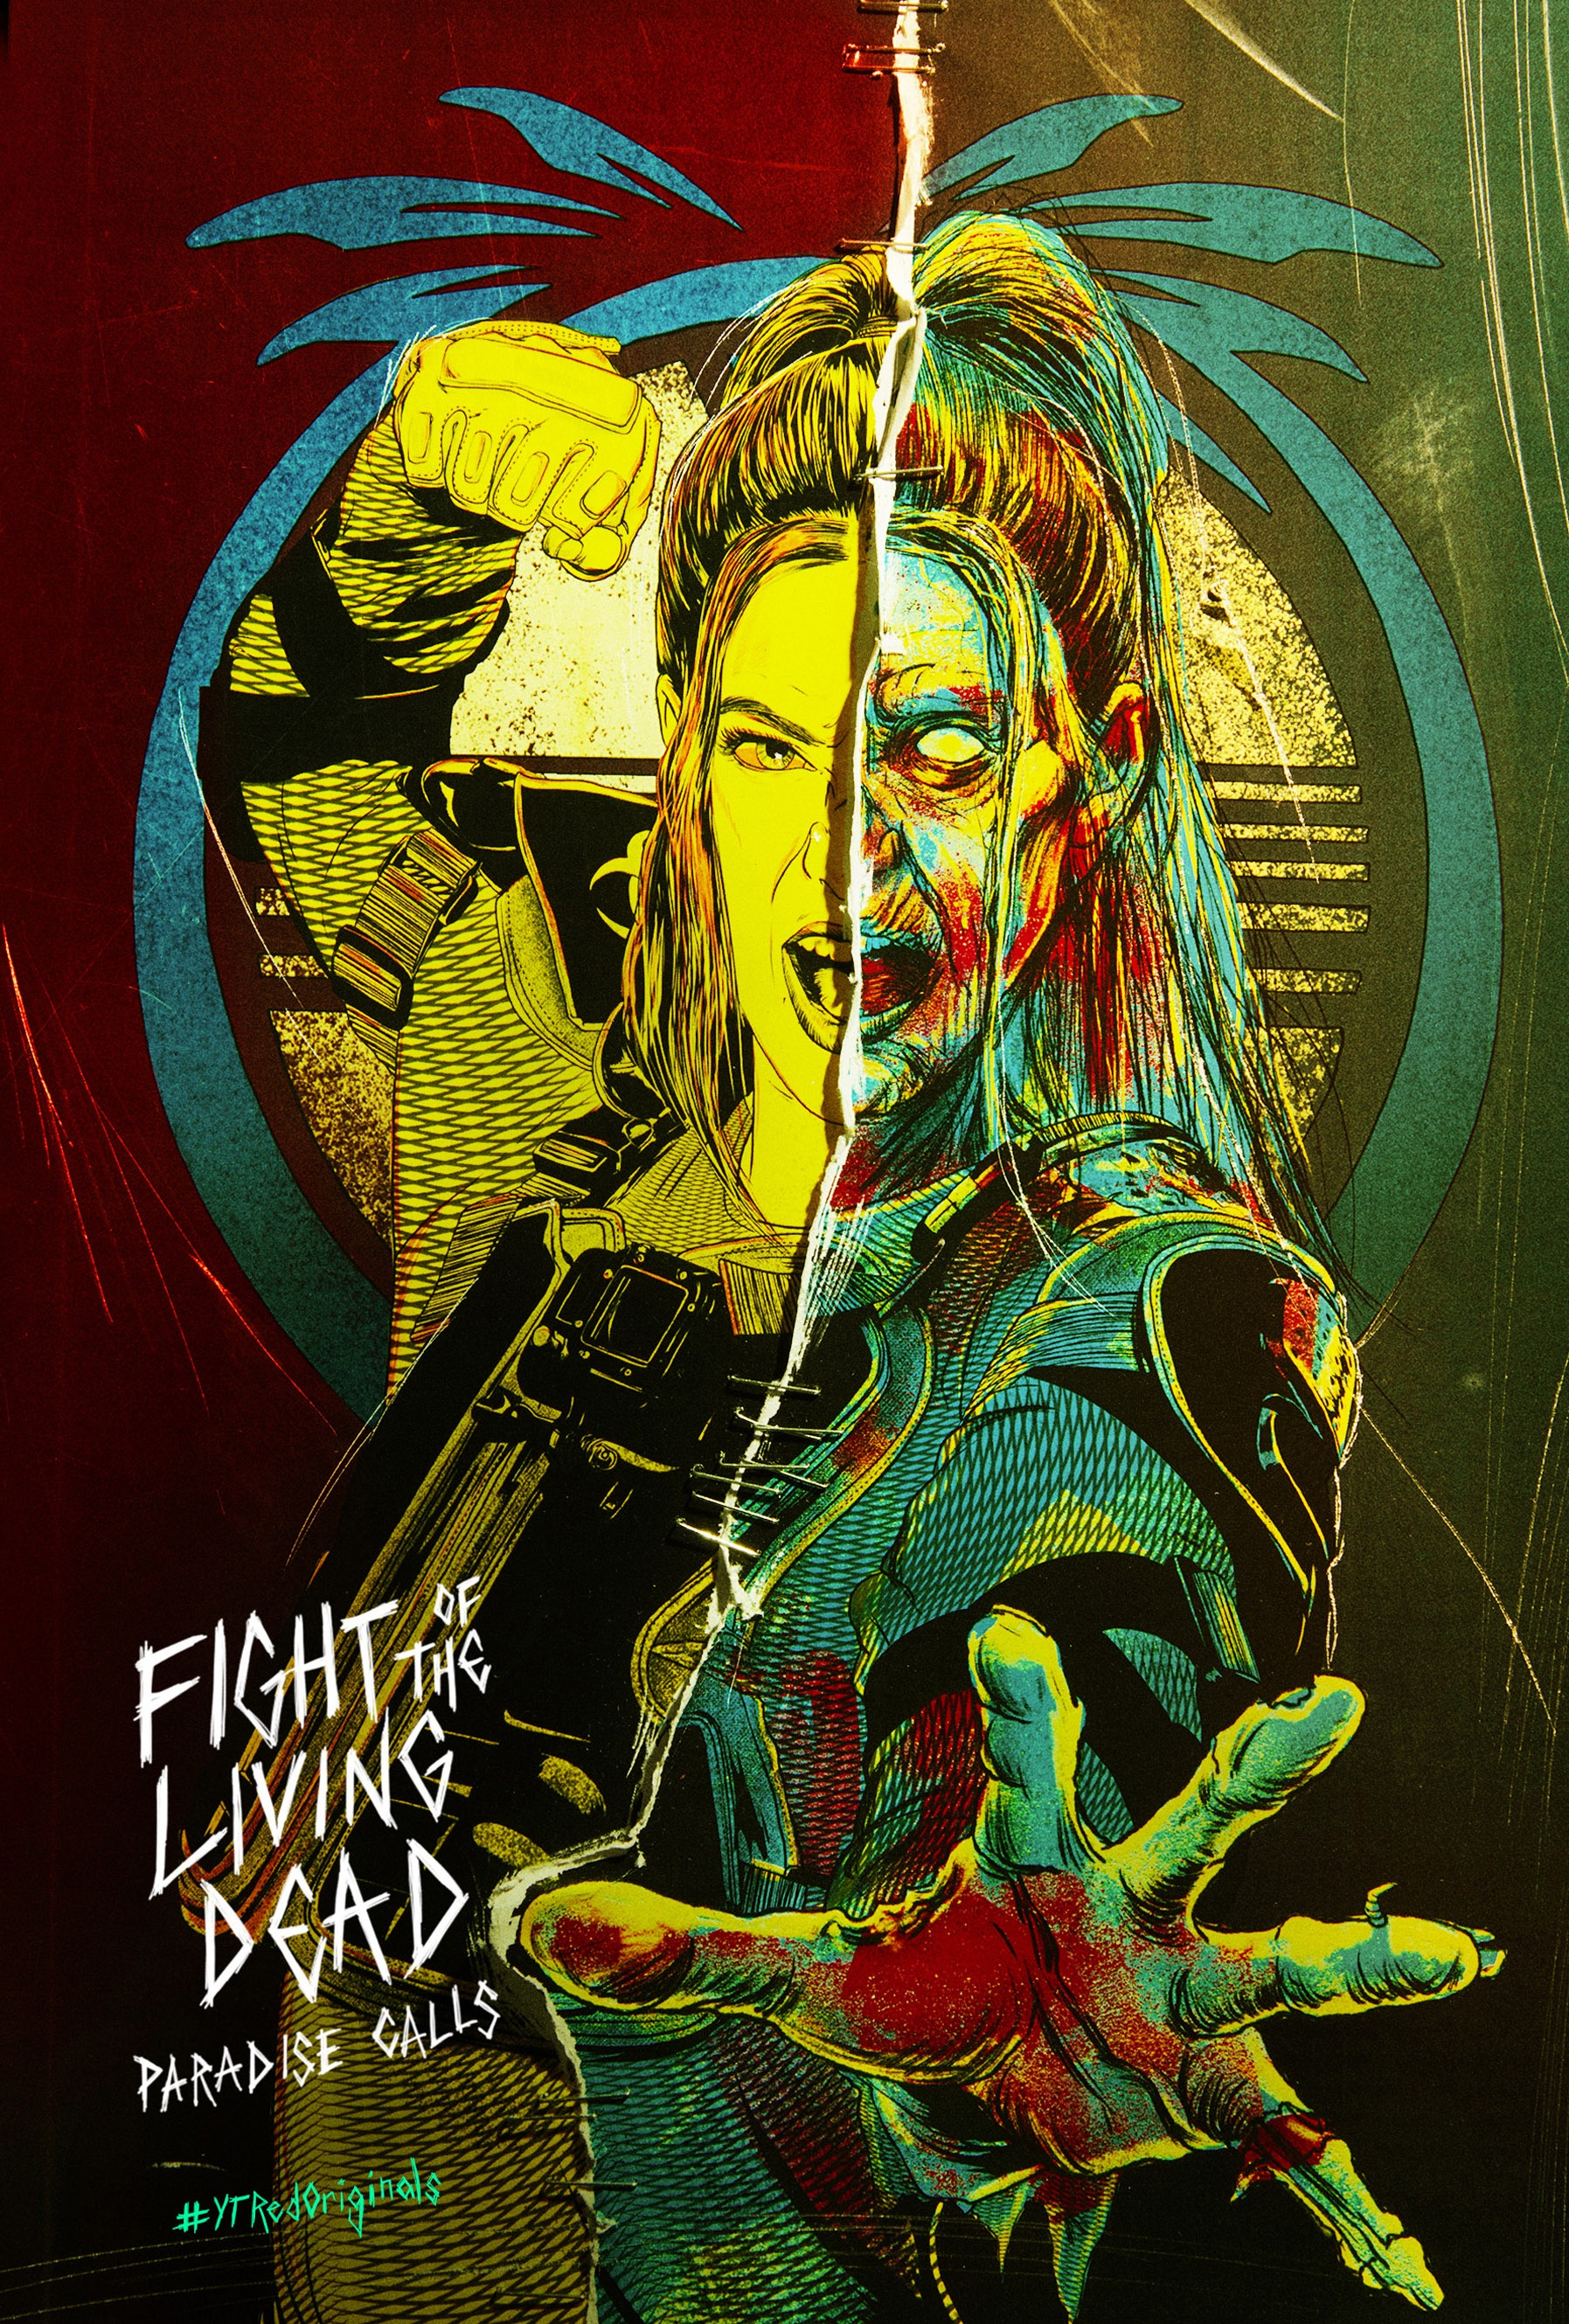 Image Media for Fight of the Living Dead: Paradise Calls - Character Series 3